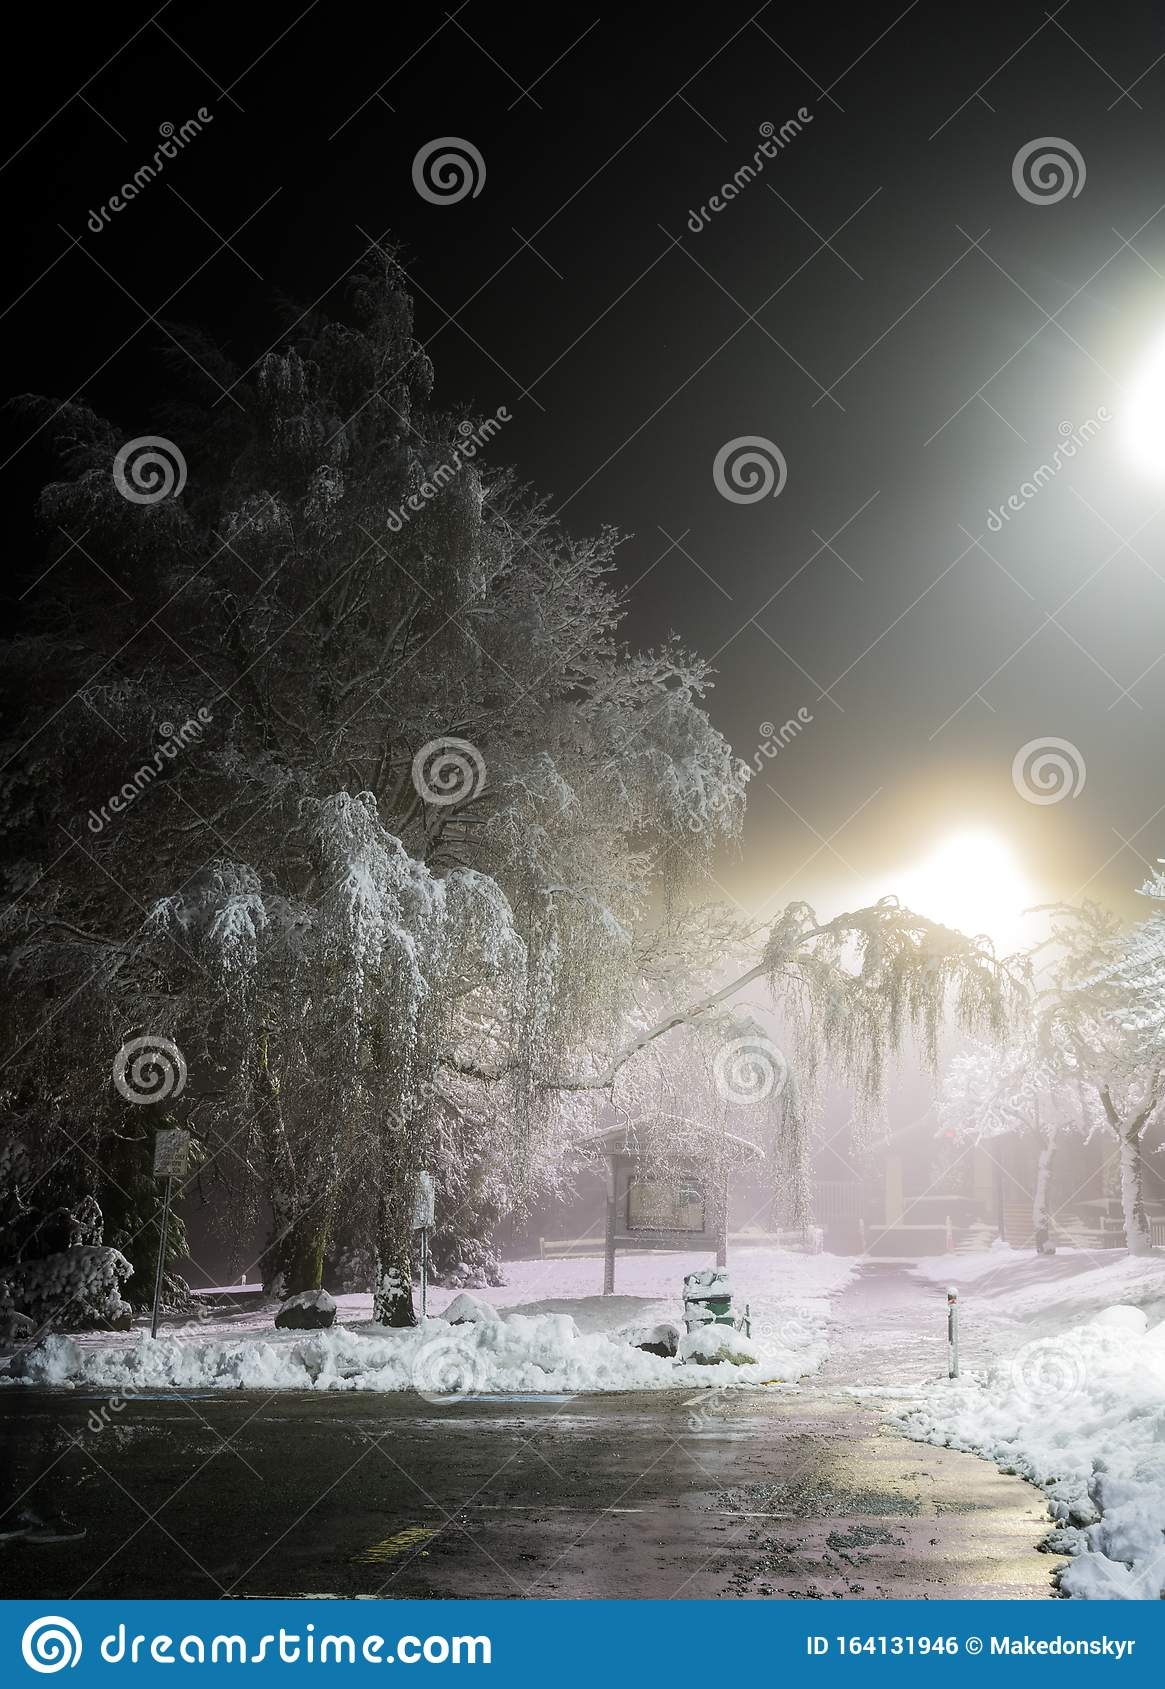 Winter Wonderland Trees Covered In Snow Night City Lights Shining Through Ideal Picture That Brings Up Holiday Spirit Stock Photo Image Of January Fairytale 164131946